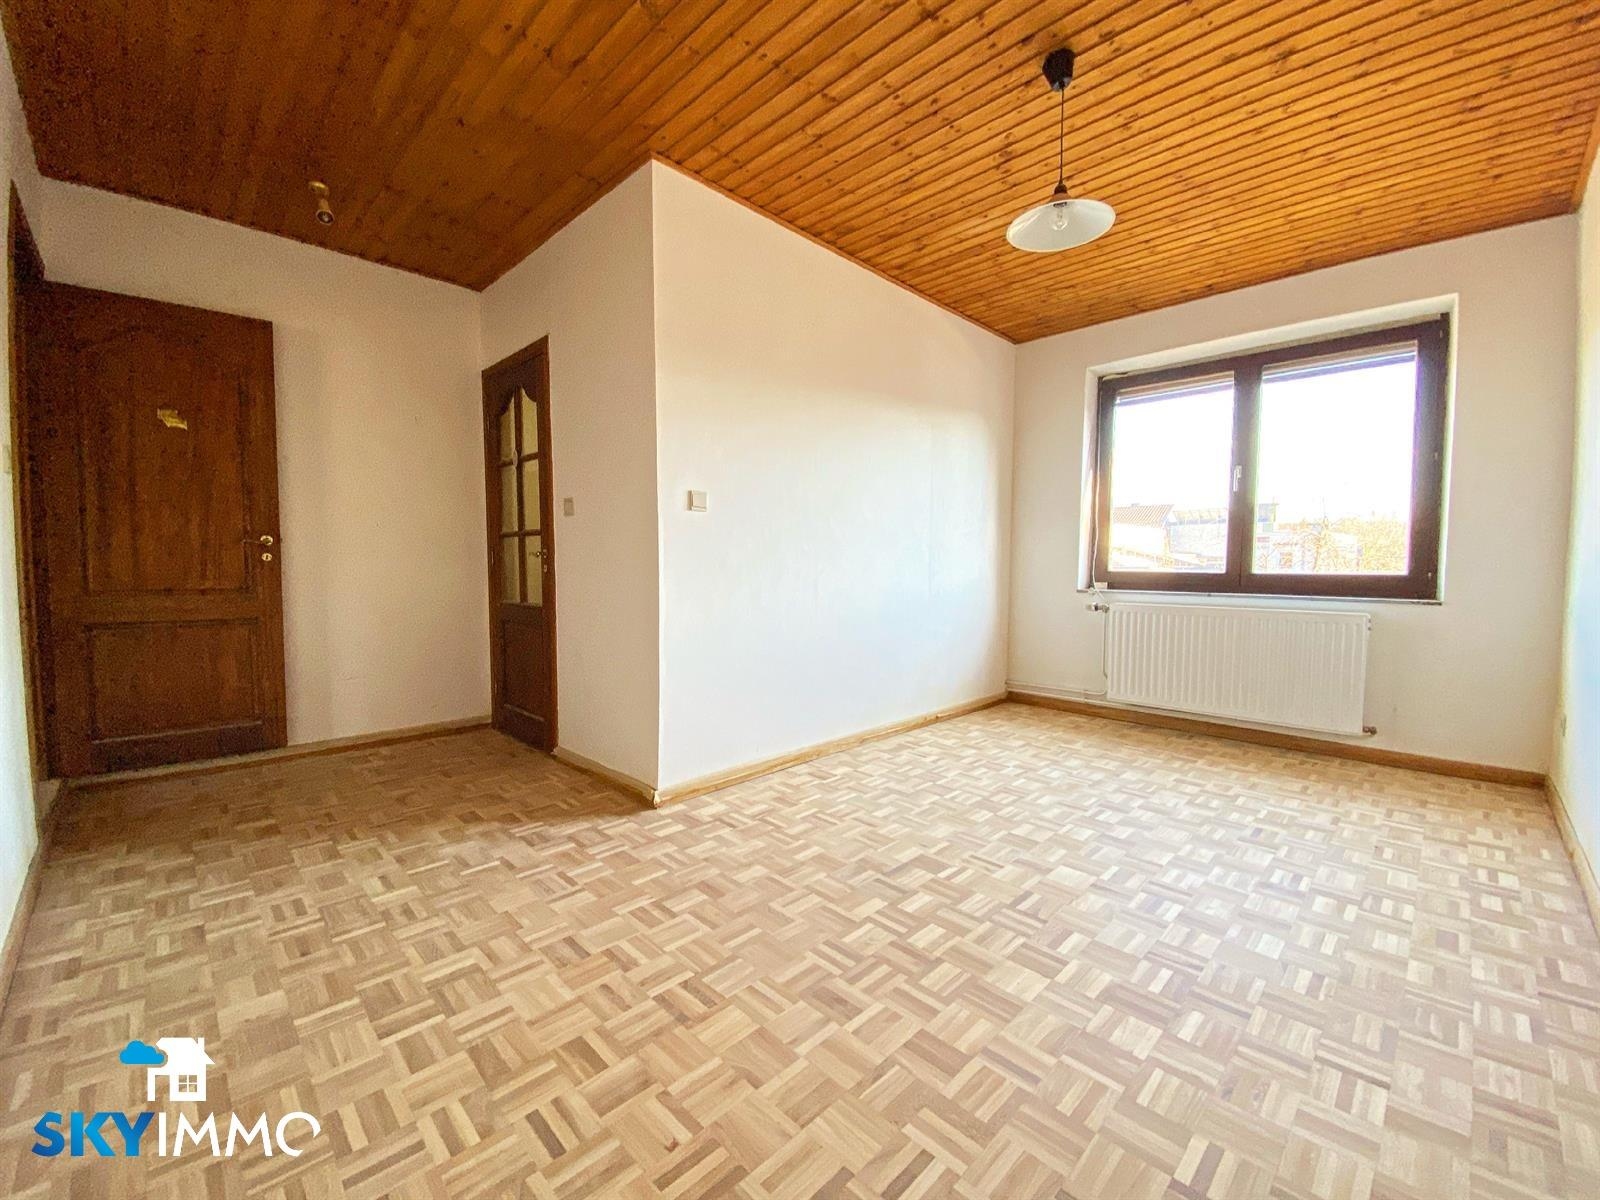 House - Flemalle - #4302890-18